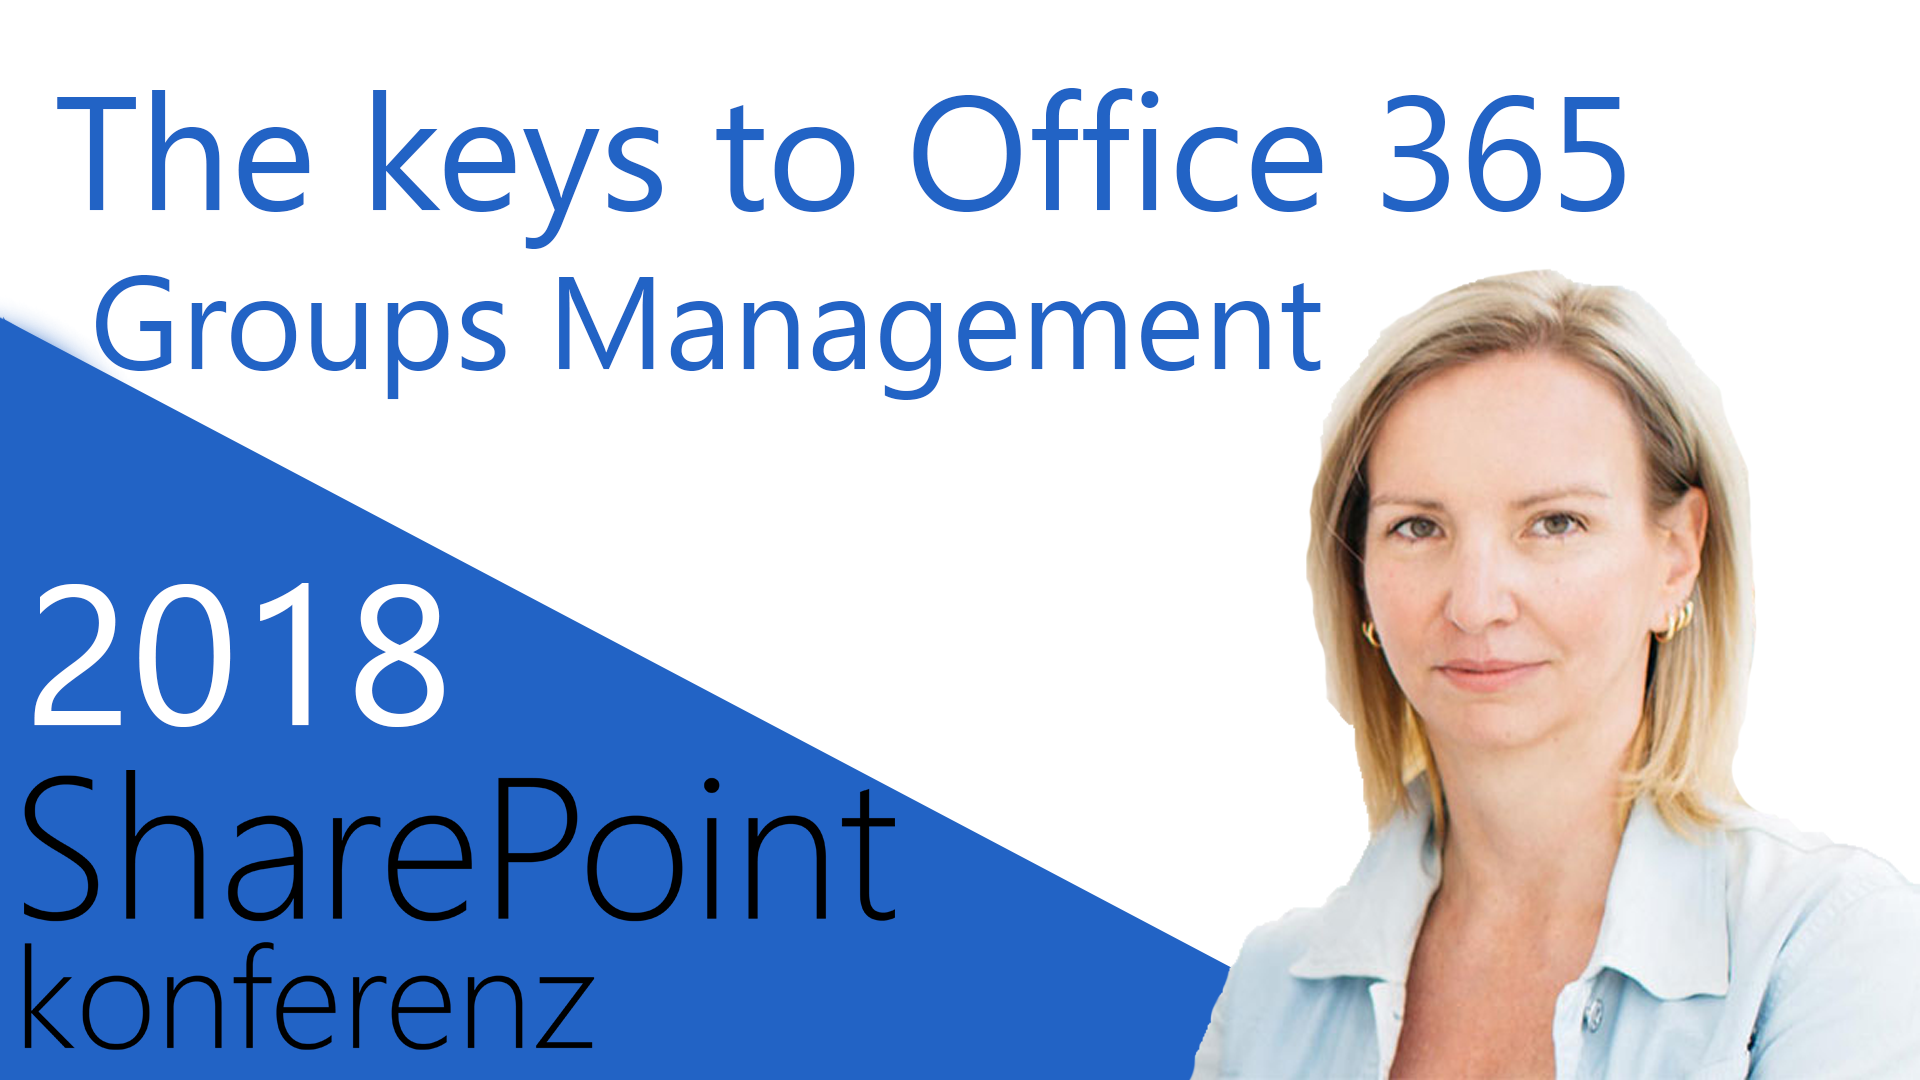 2018/SharePointKonferenz/TheKeysToOffice365GroupsManagement